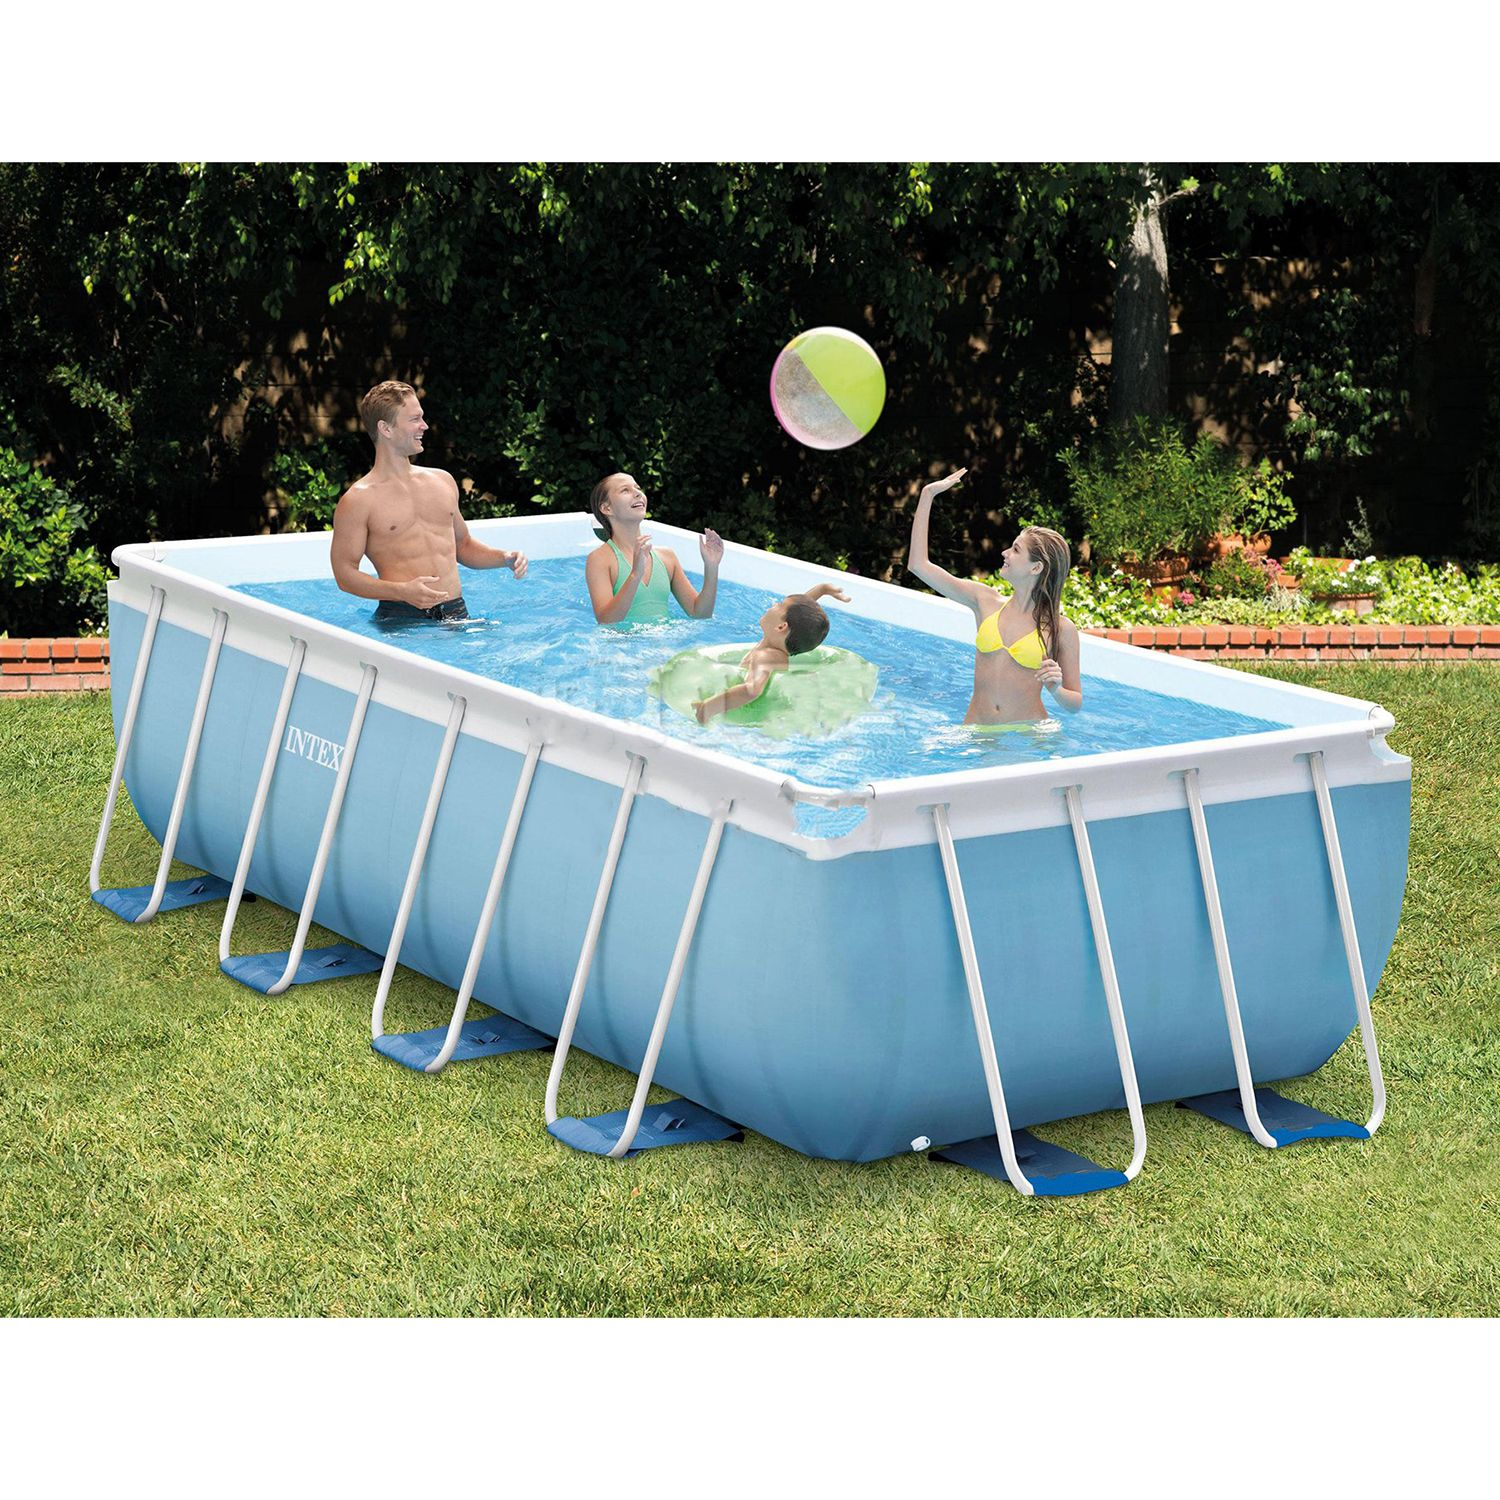 The Intex Prism Frame Pool Set Has Everything You Need To Get The